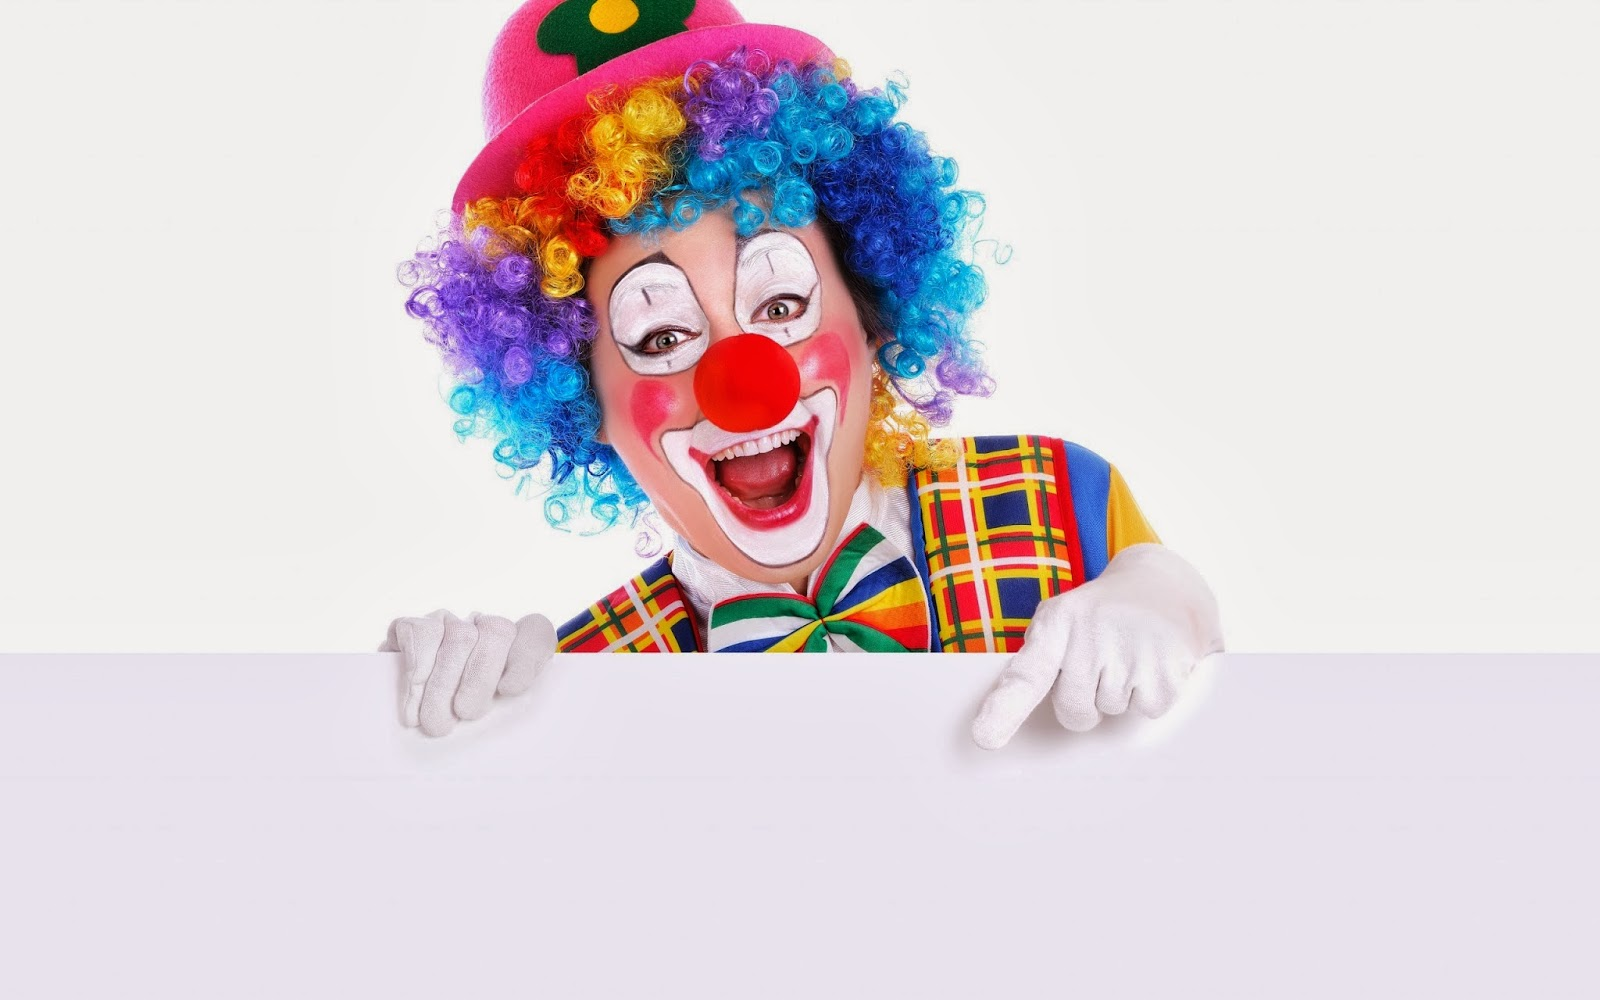 Clowns HD Wallpapers clown joker funny image 1600x1000